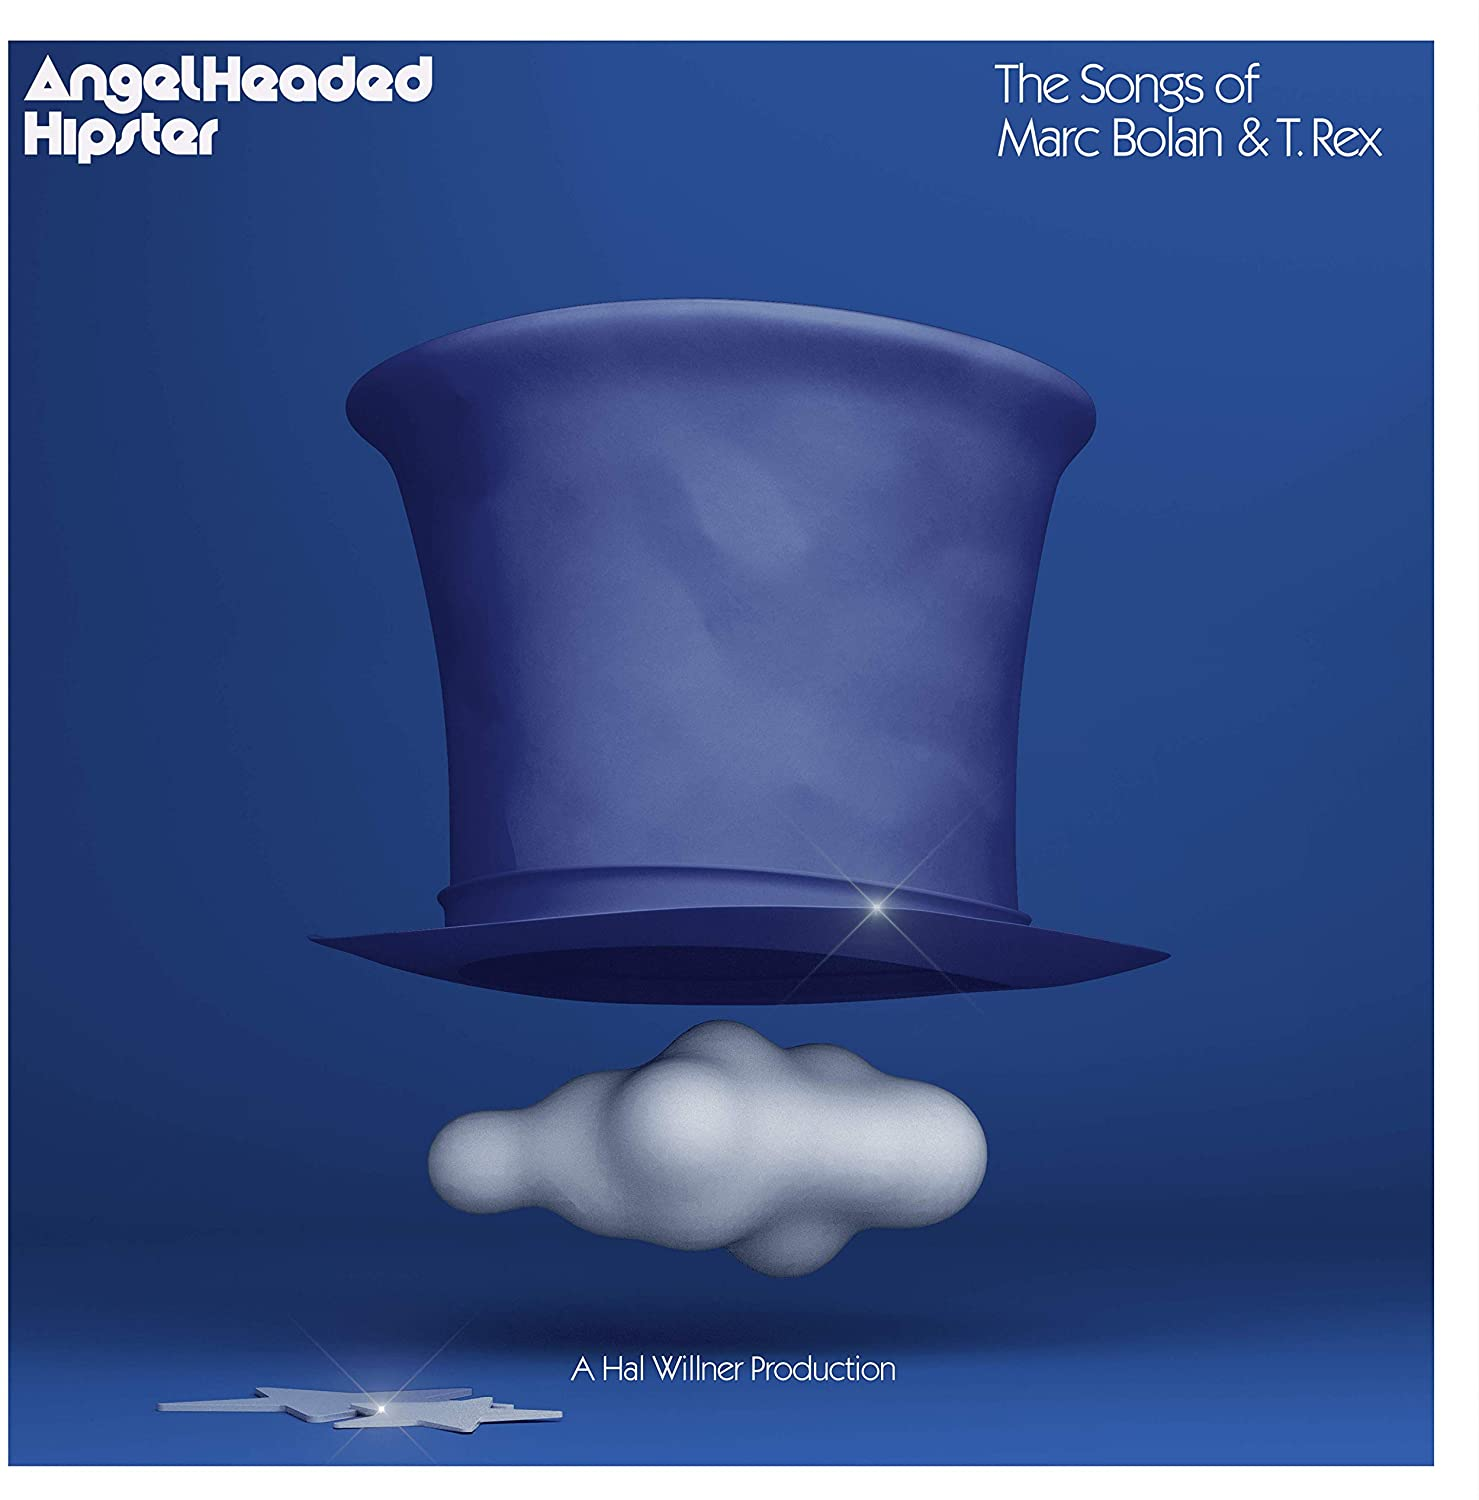 Angelheaded Hipster: The Songs of Marc Bolan and T. Rex